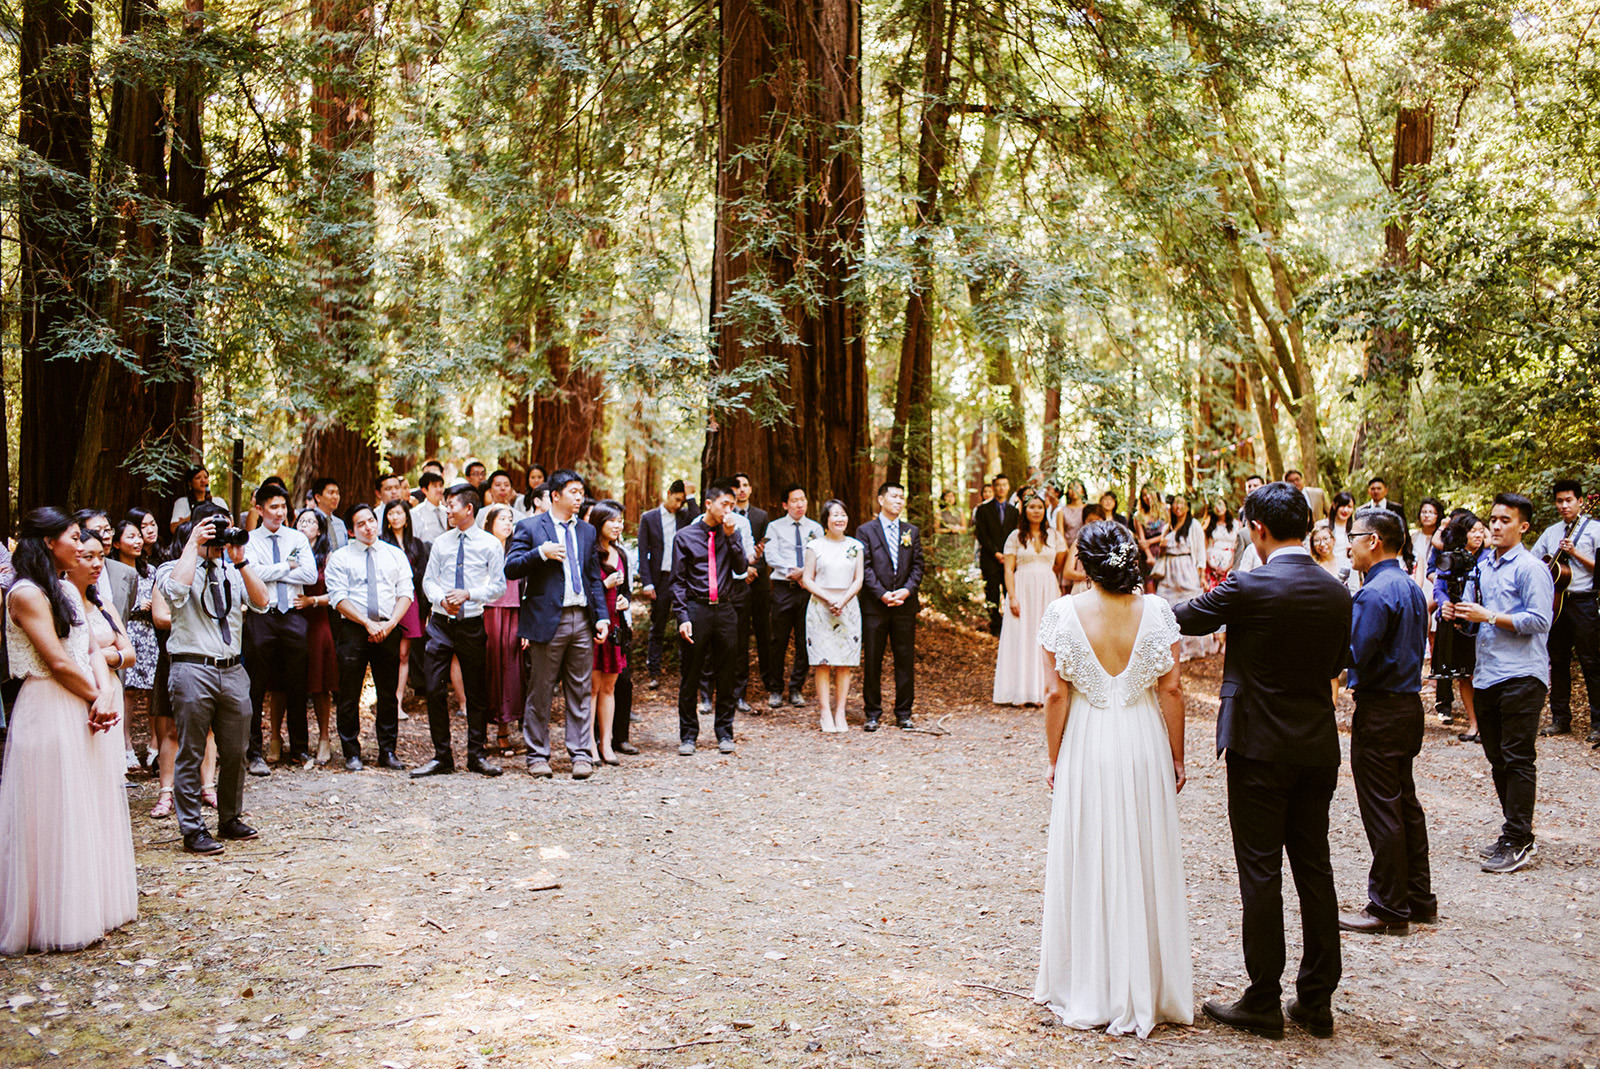 kimclay-blog-075 REDWOOD FOREST WEDDING